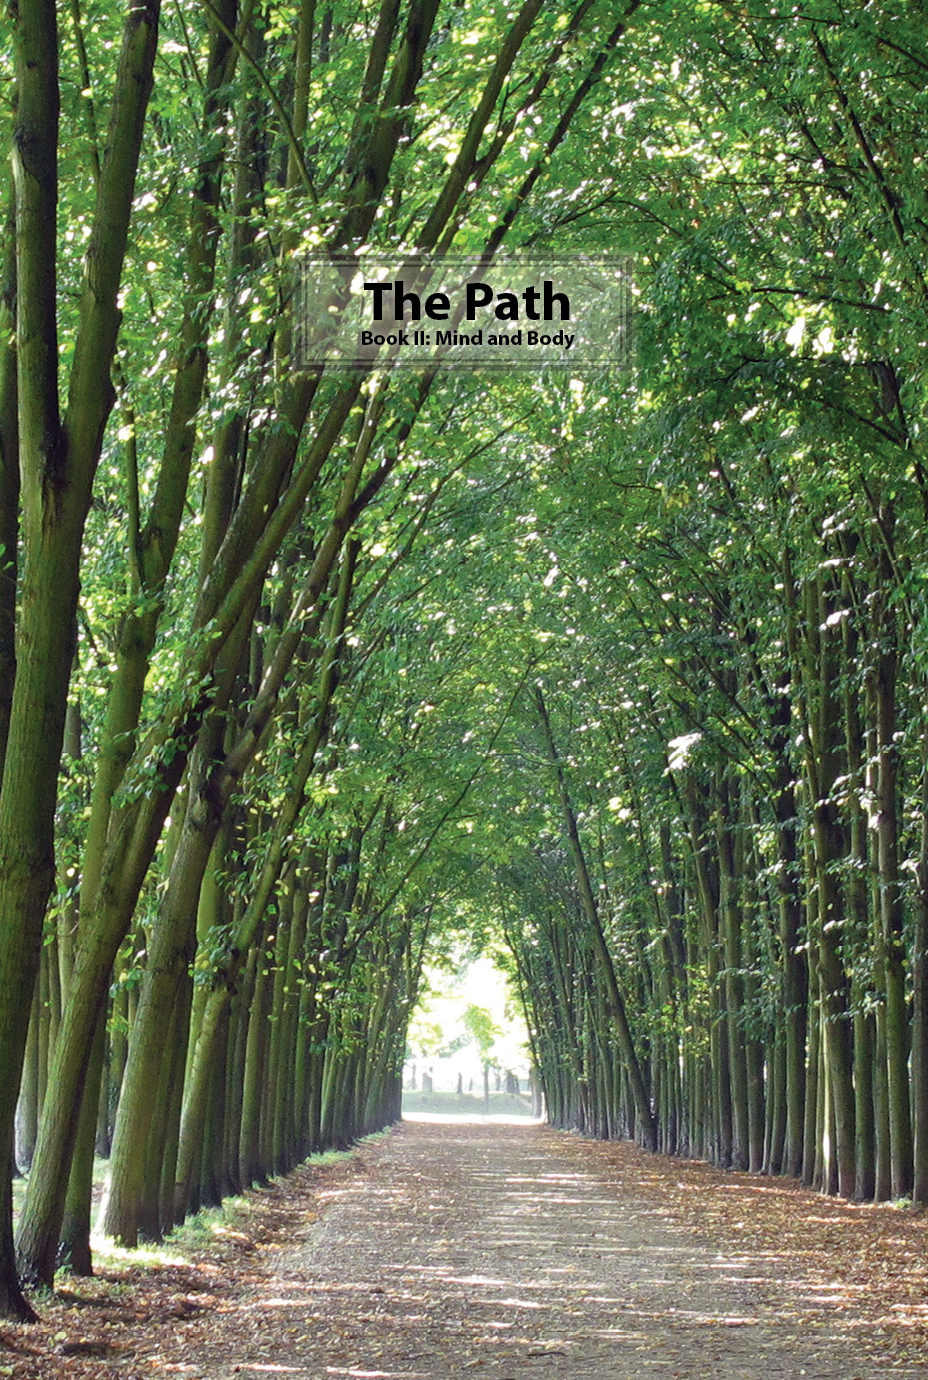 The Path Book II